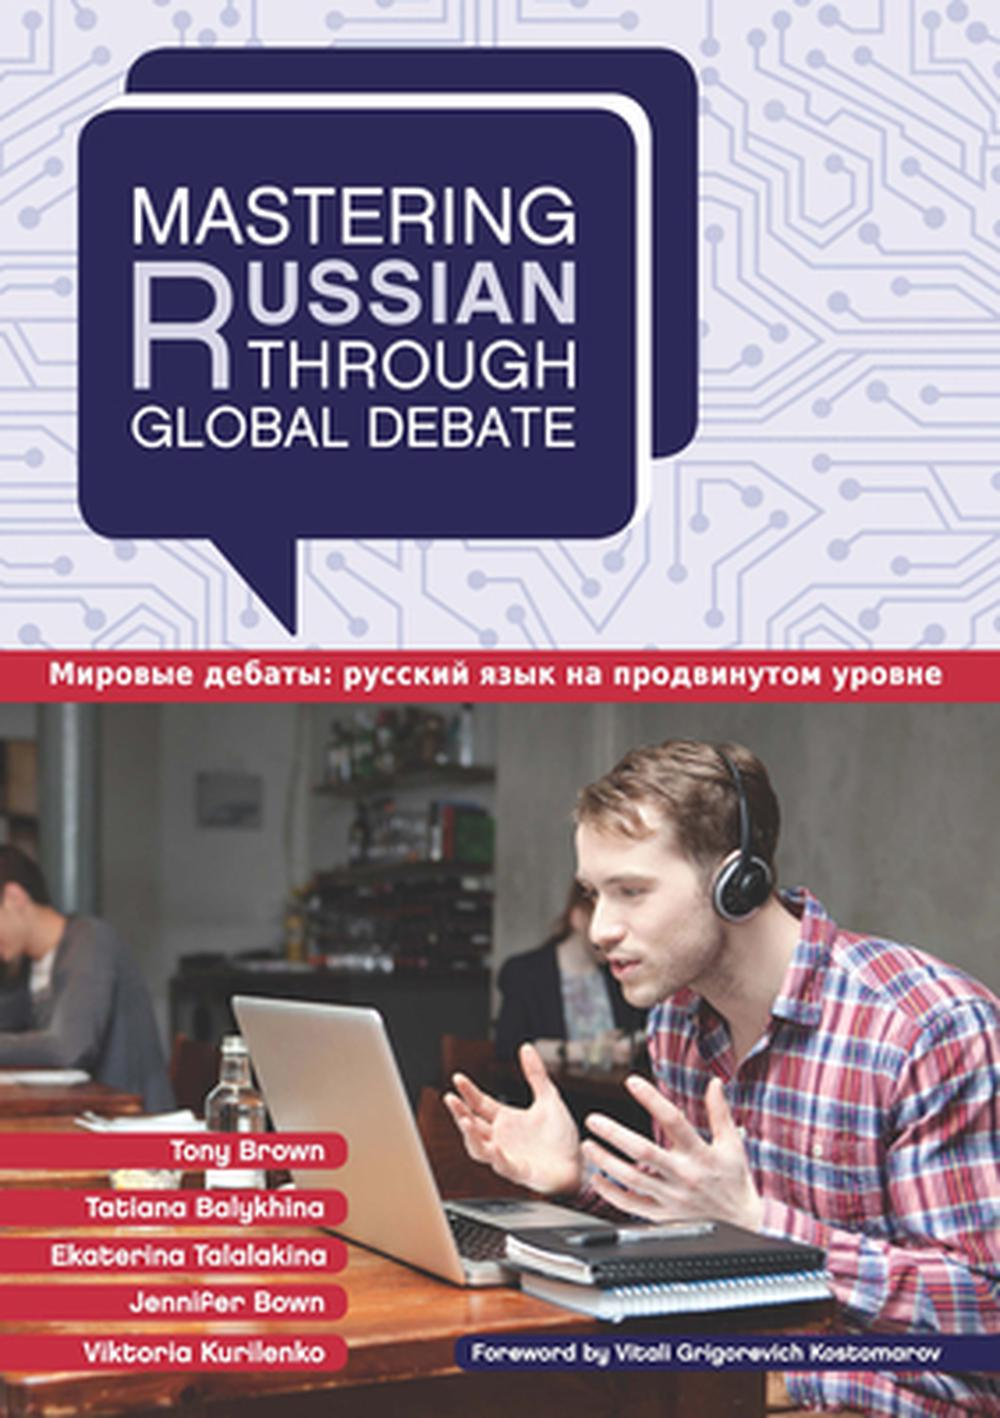 Mastering Russian Through Global Debate by Tony Brown,Tatiana Balykhina,Ekaterina Talalakina,Jennifer Bown,Viktoria Kurilenko, ISBN: 9781626160880